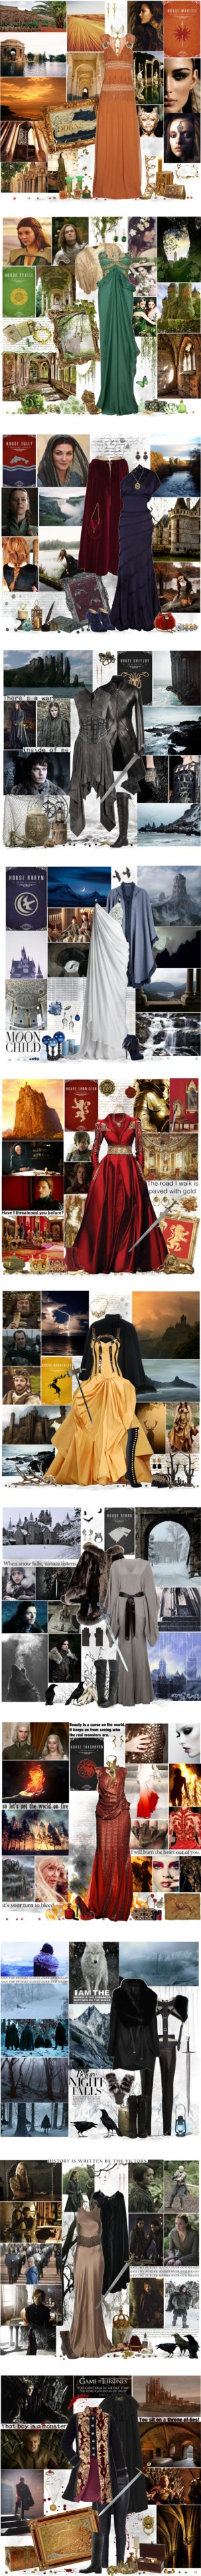 """Game of Thrones"" by cyanideteaparty ❤ liked on Polyvore"